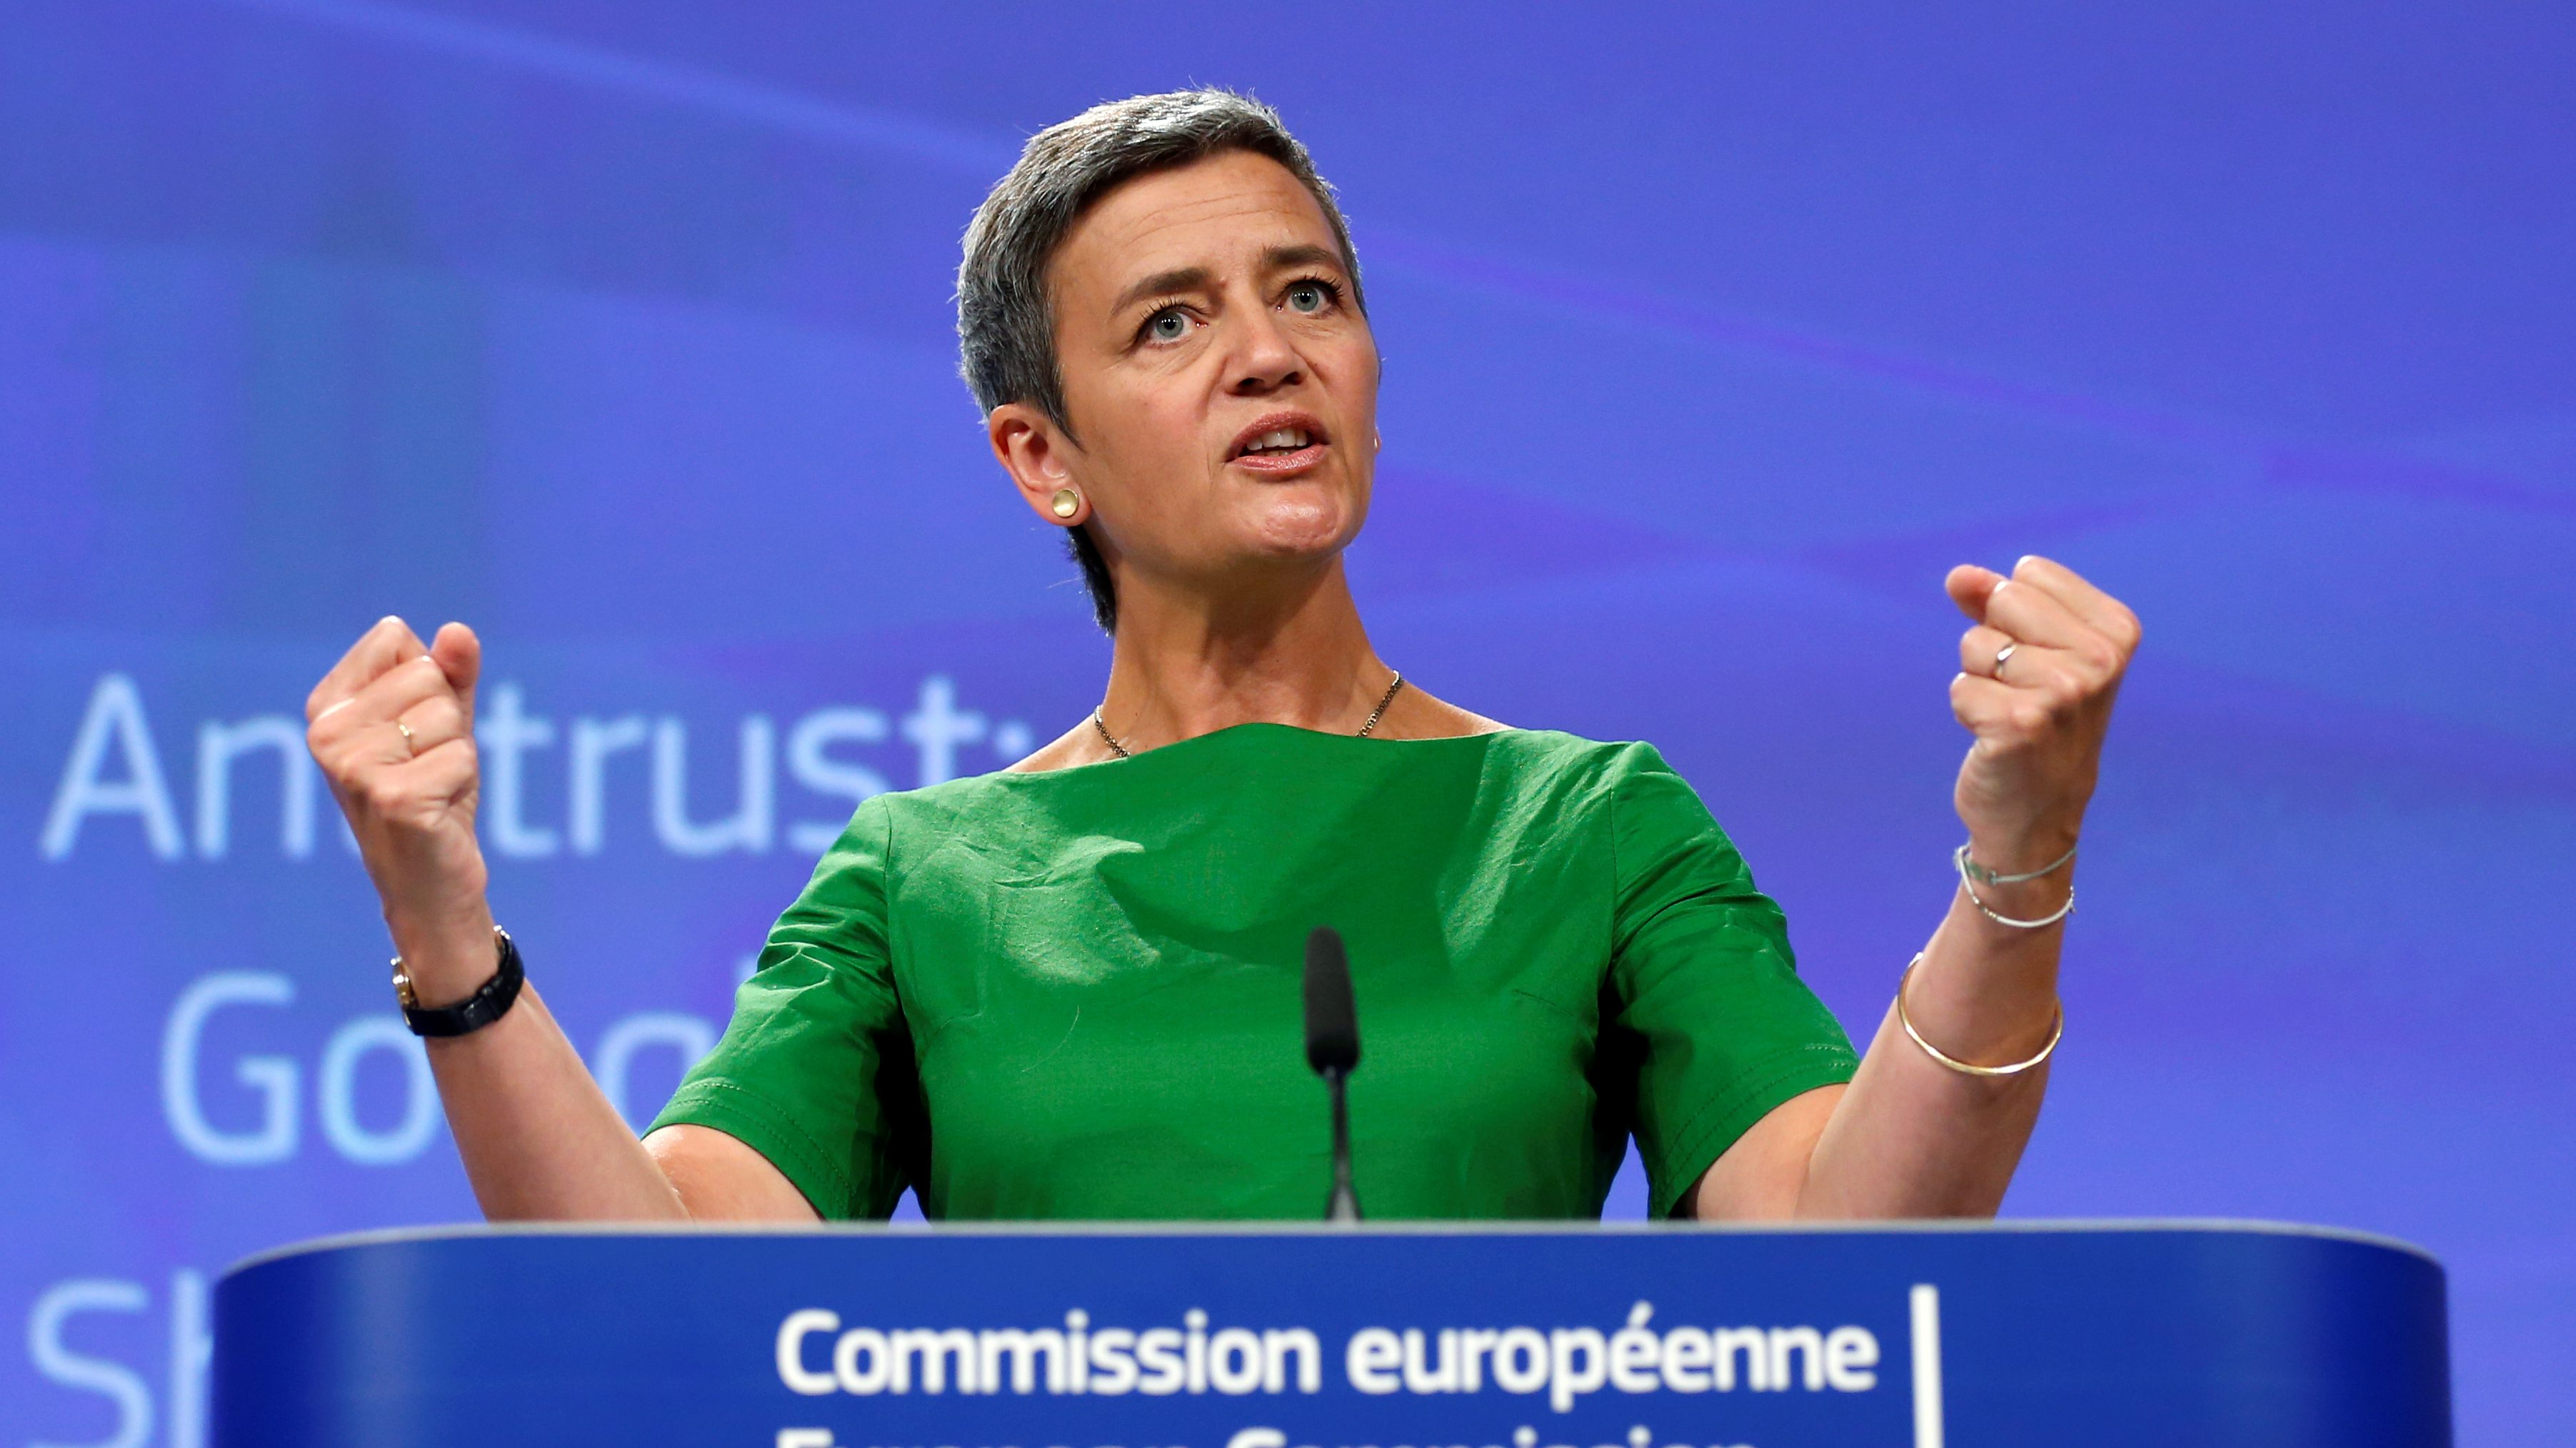 European Competition Commissioner Margrethe Vestager holds a news conference at the EU Commission's headquarters in Brussels, Belgium, June 27, 2017.